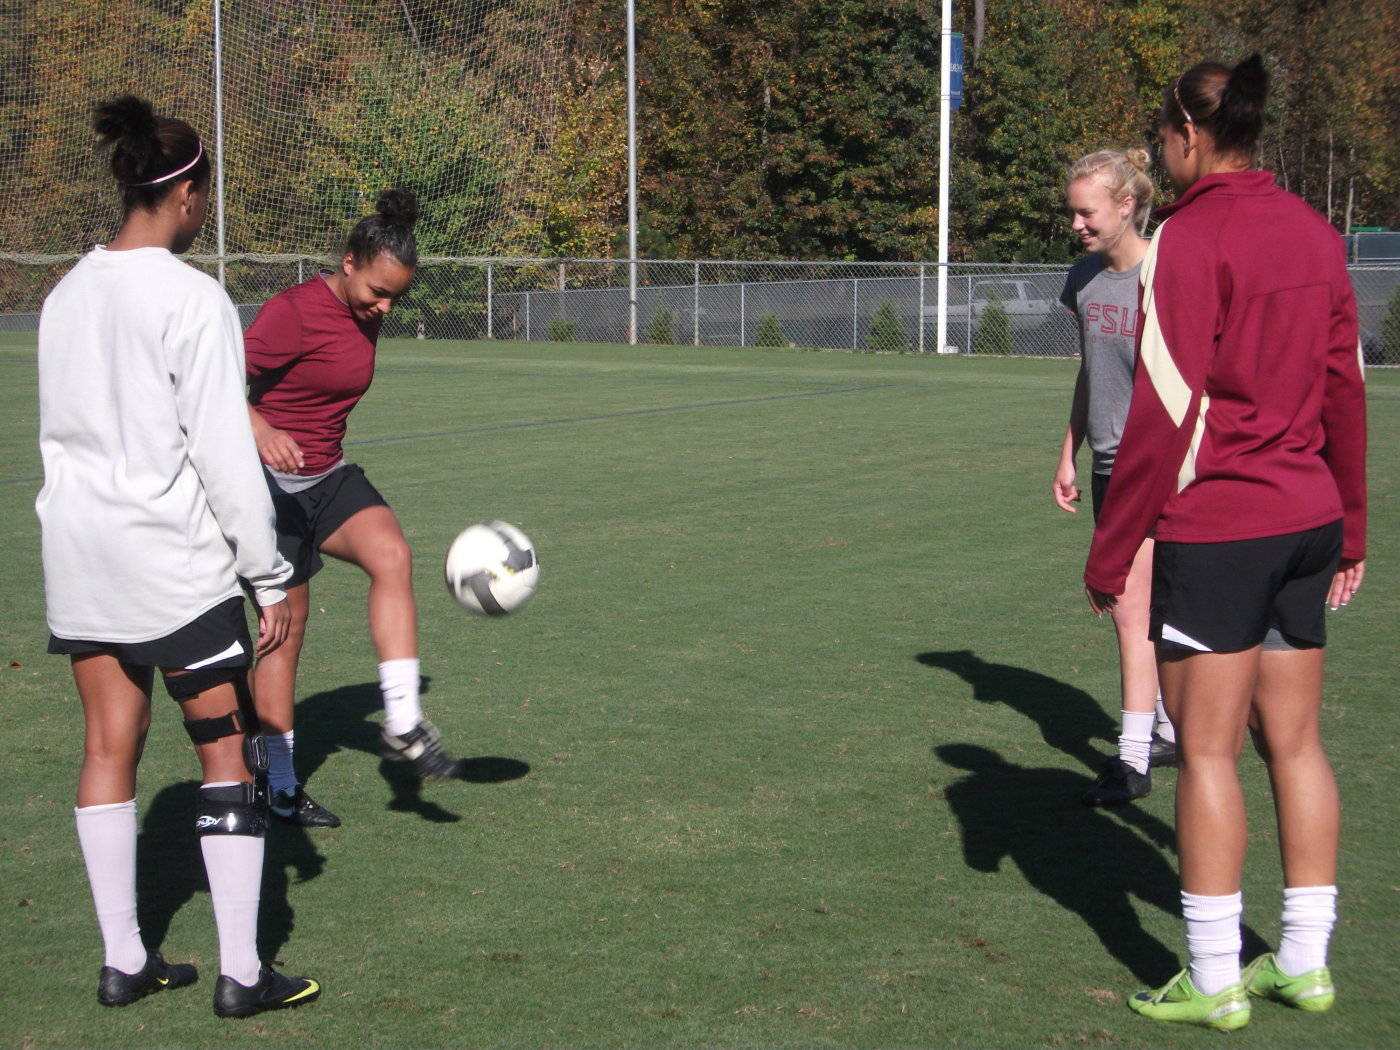 Ines Jaurena, Casey Short, Toni Pressley and Ella Stephan working out during practice.